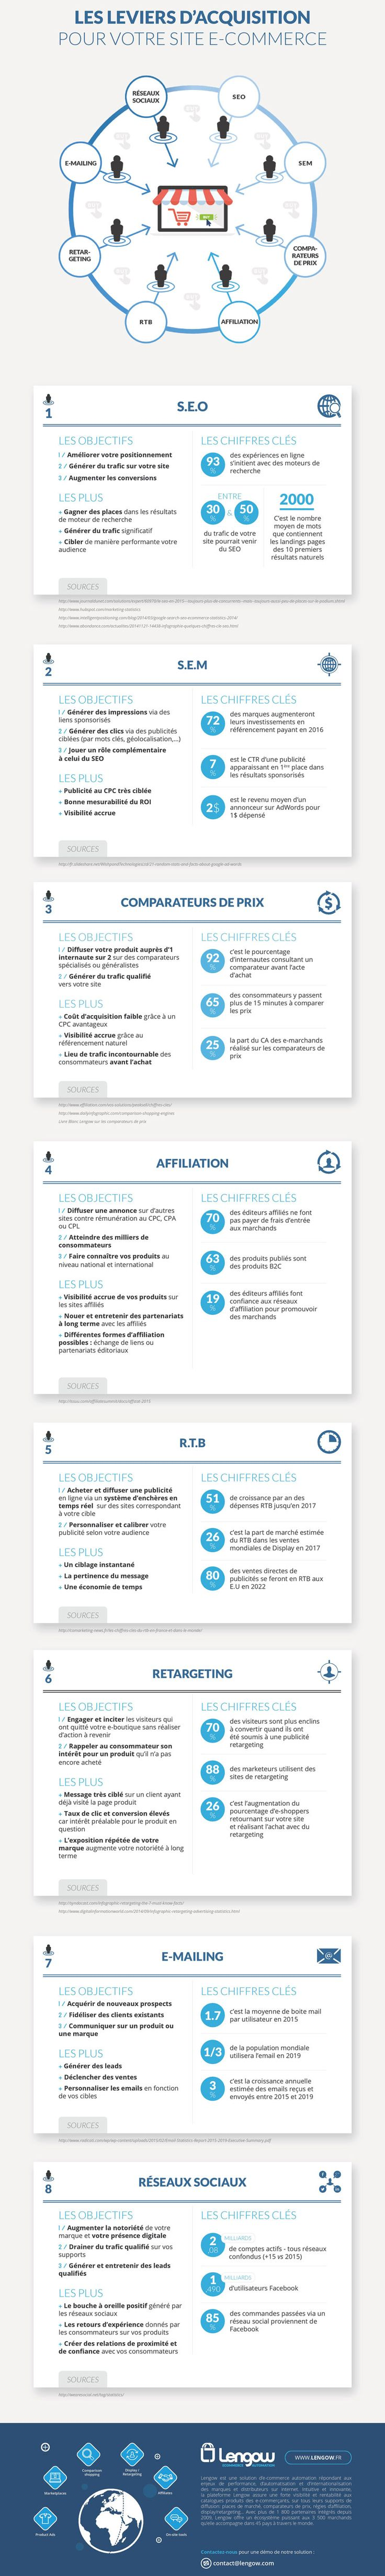 [Infographie] Les leviers d'acquisition les plus performants pour les sites…